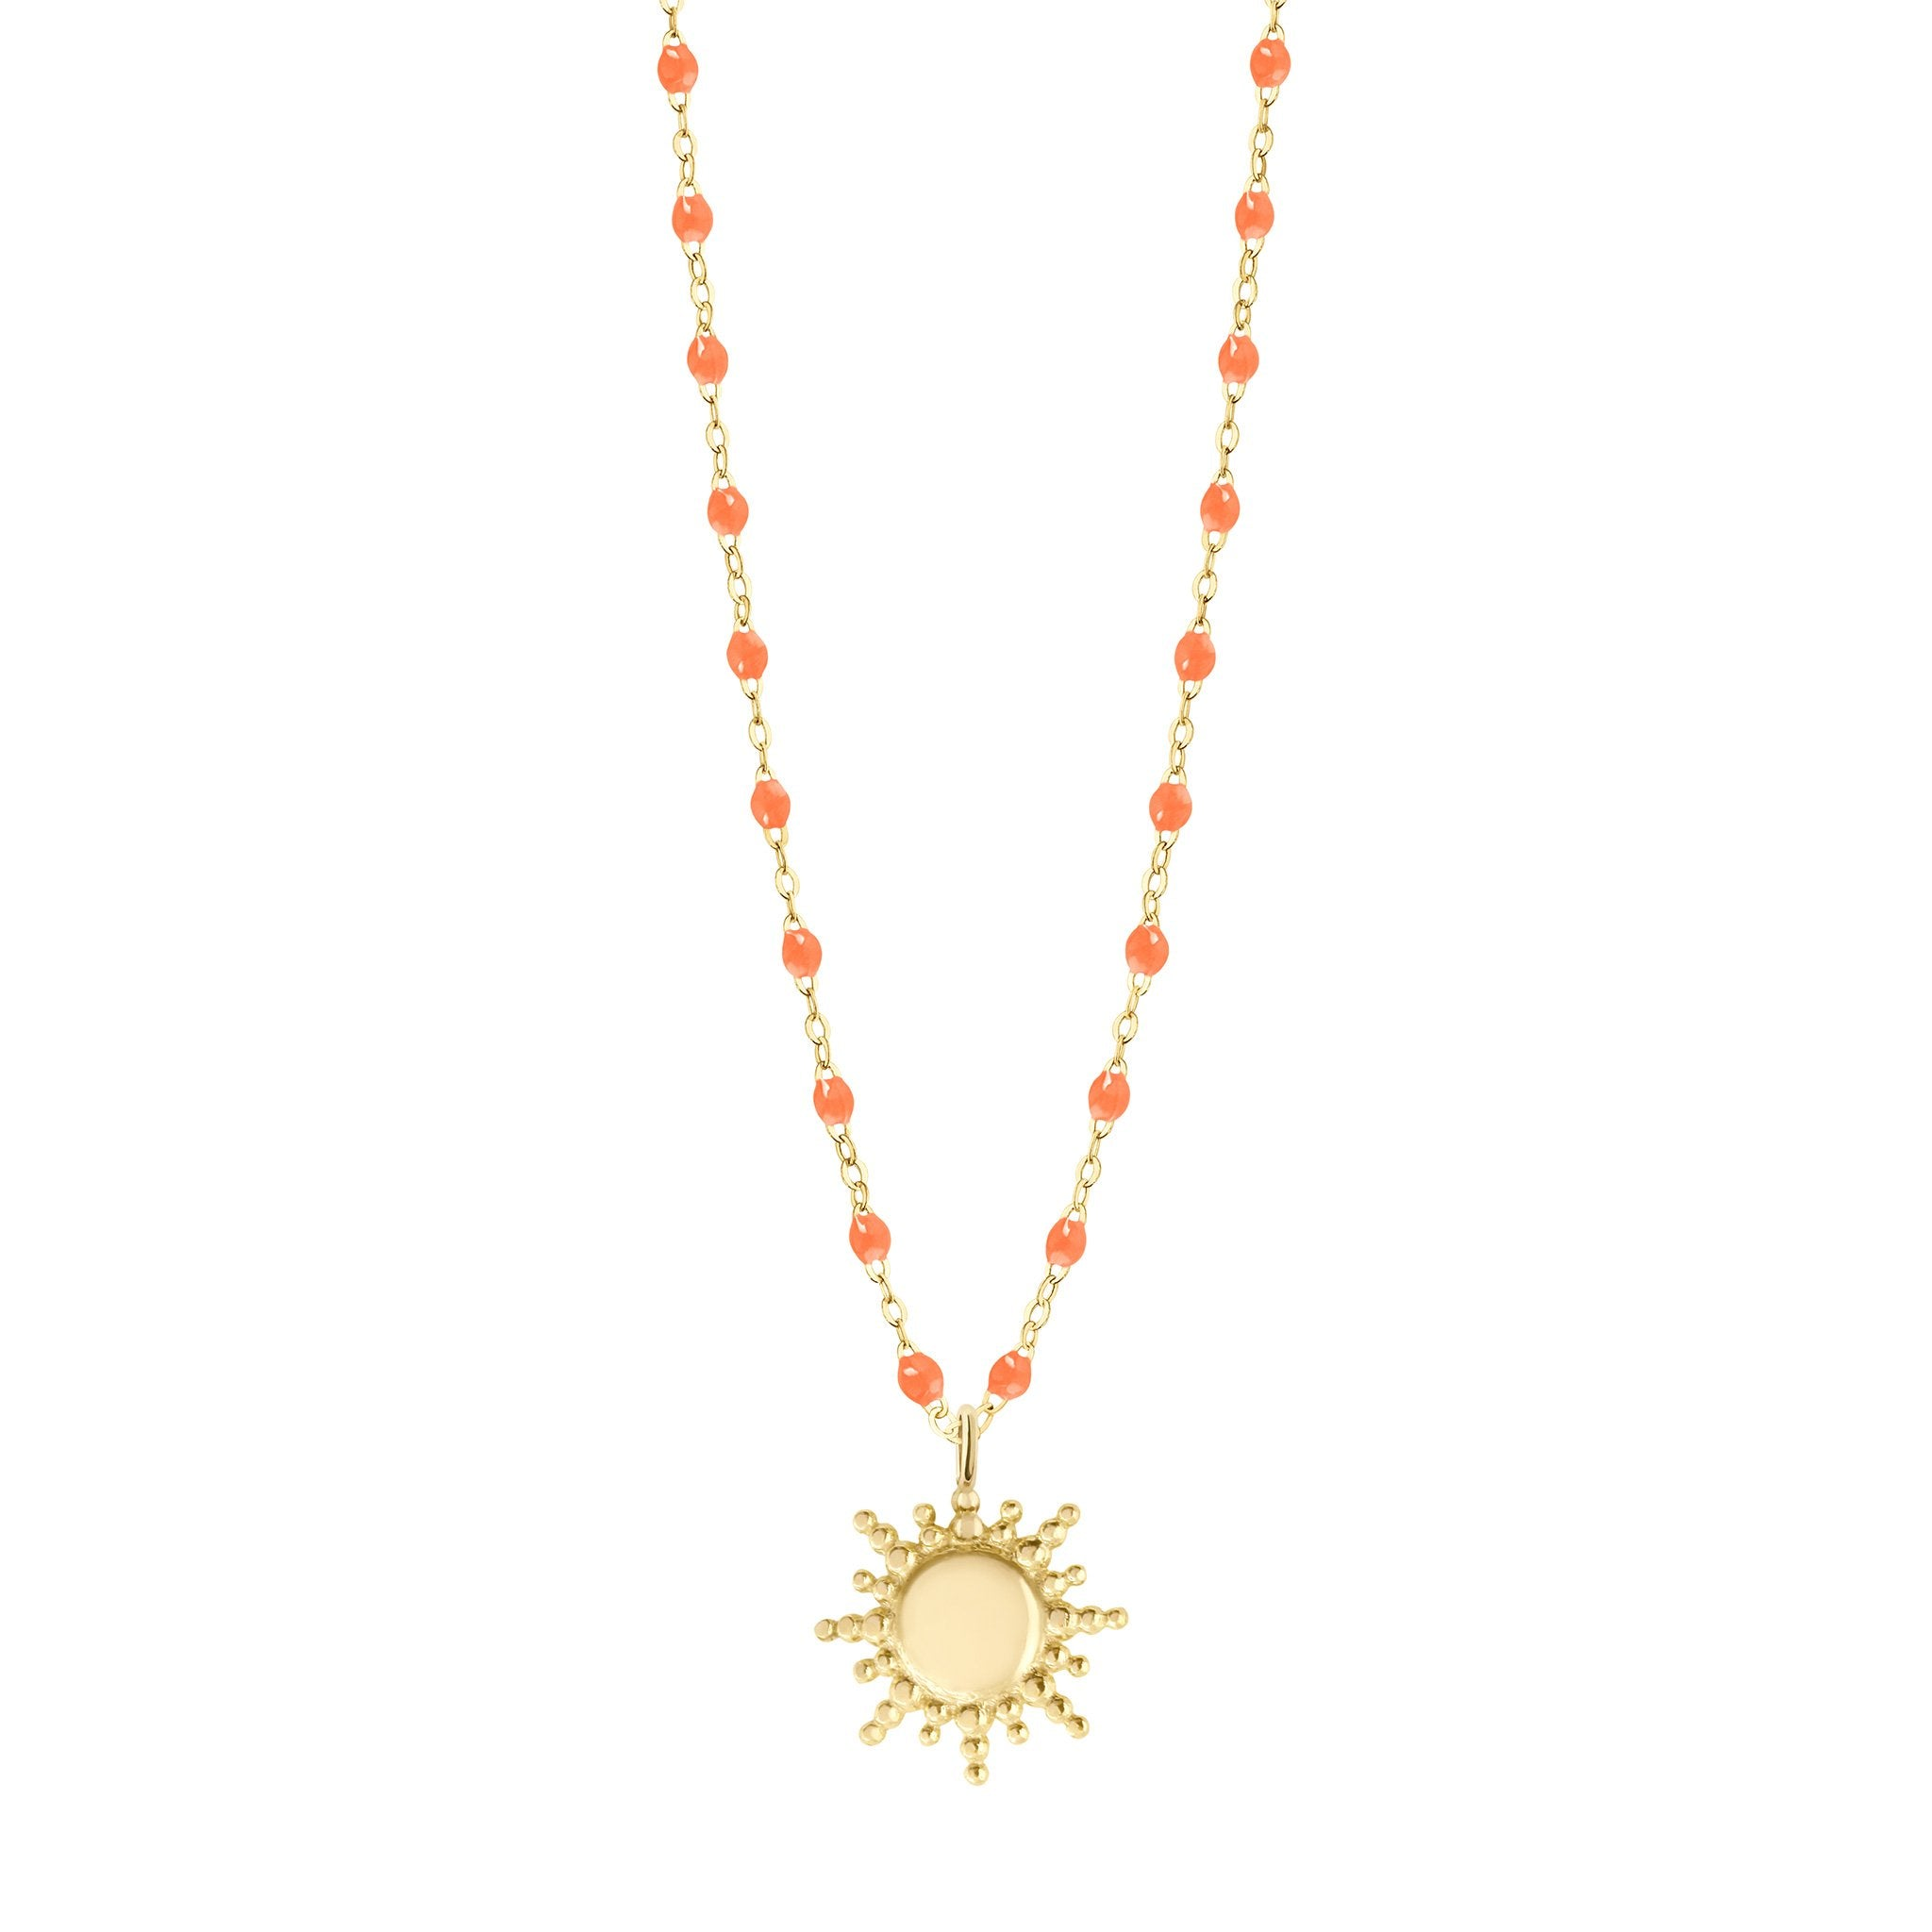 Gigi Clozeau - Sun Classic Gigi Orange necklace, Yellow Gold, 16.5""